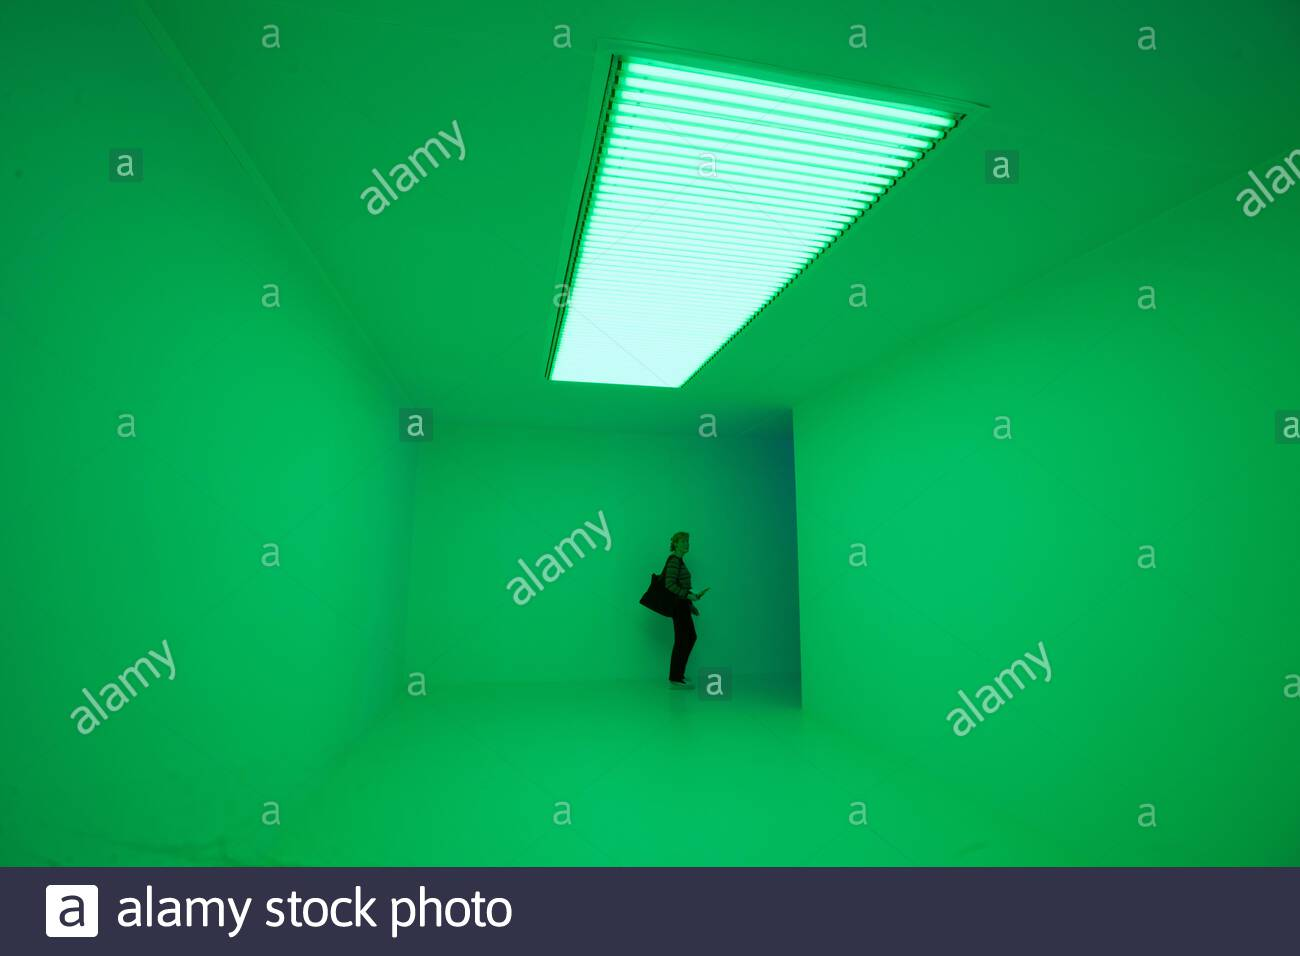 carlos-cruz-diez-chromosaturation-2008-a